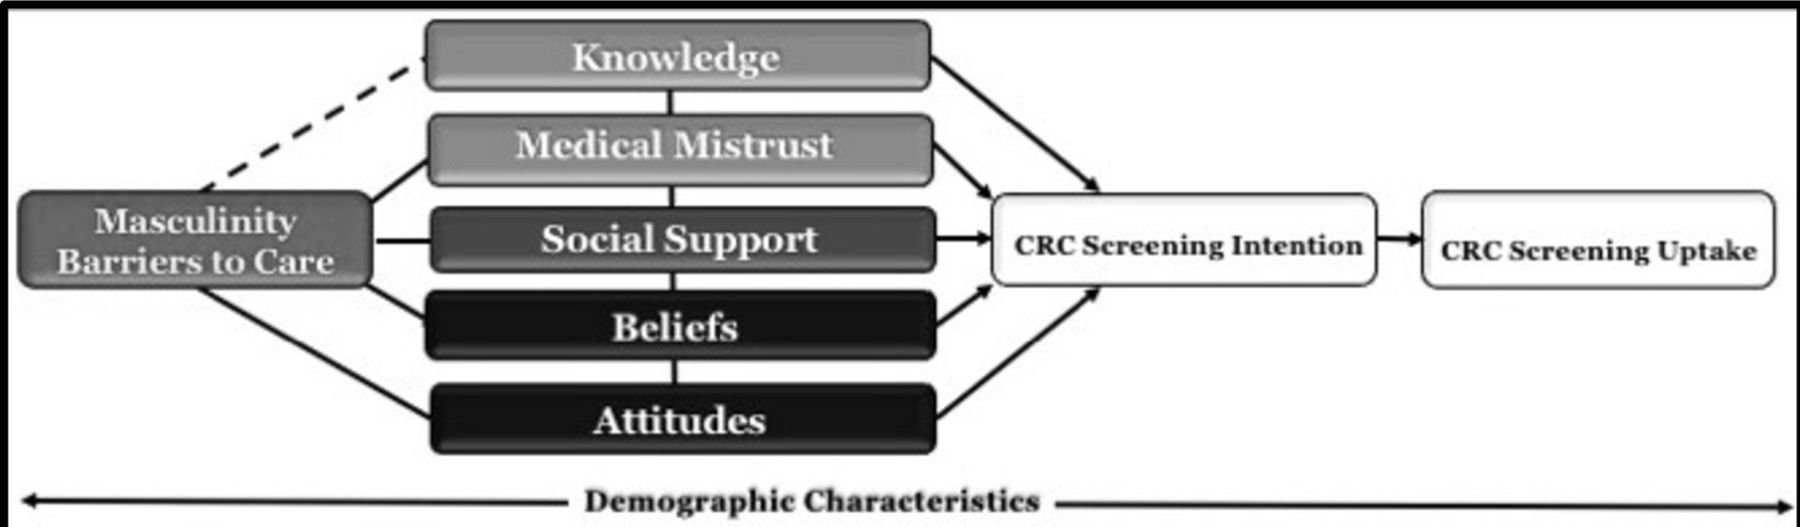 Study protocol for developing #CuttingCRC: a barbershop